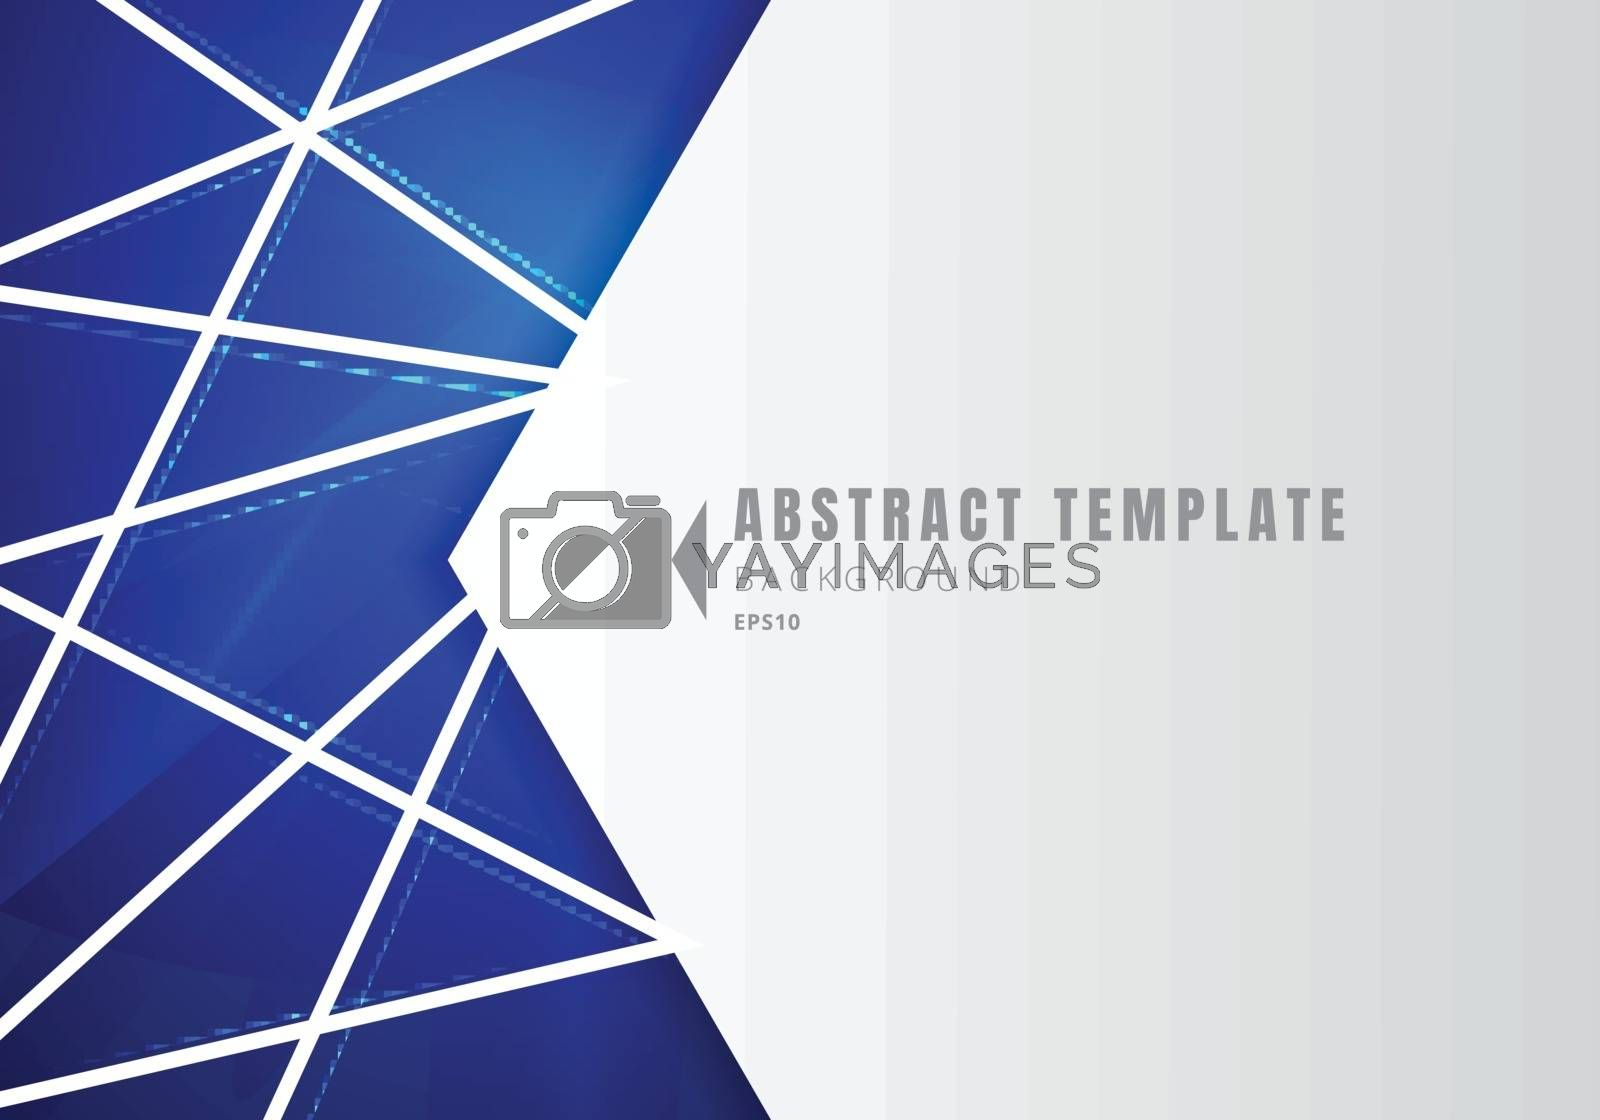 Template abstract white geometric shape polygons with lines composition on blue neon lighting background. Vector illustration